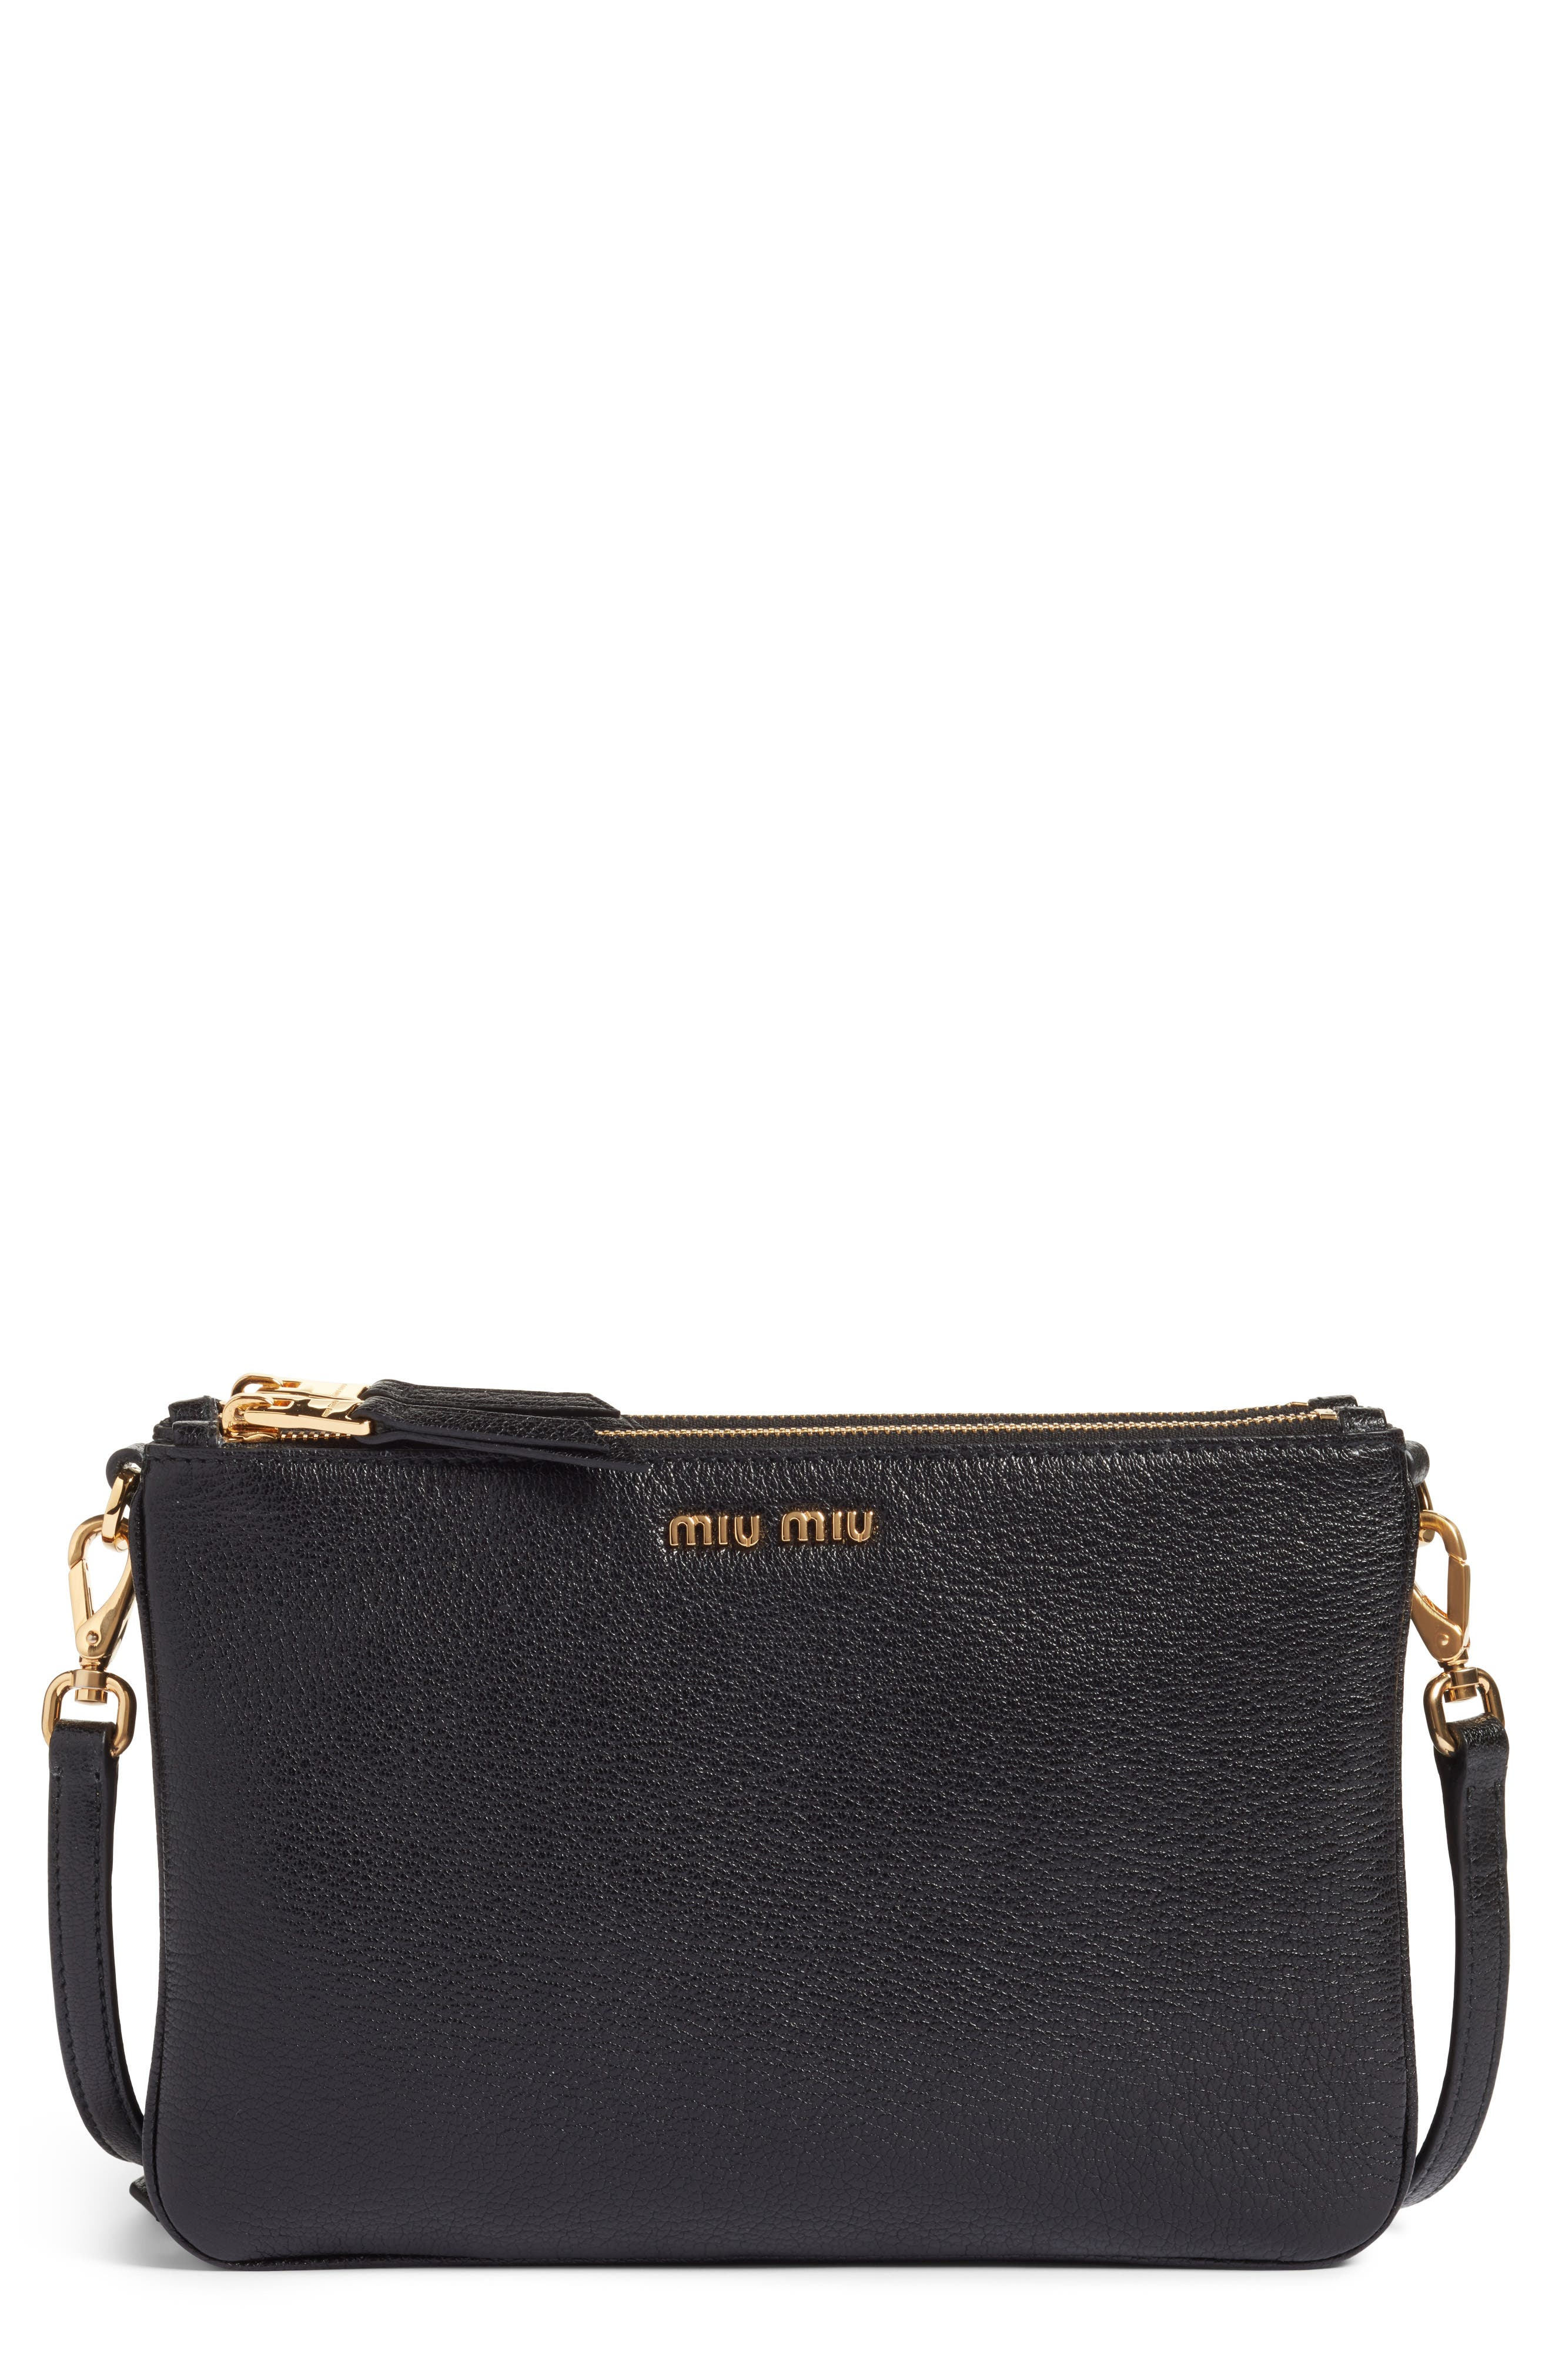 Miu Miu Madras Leather Crossbody Bag